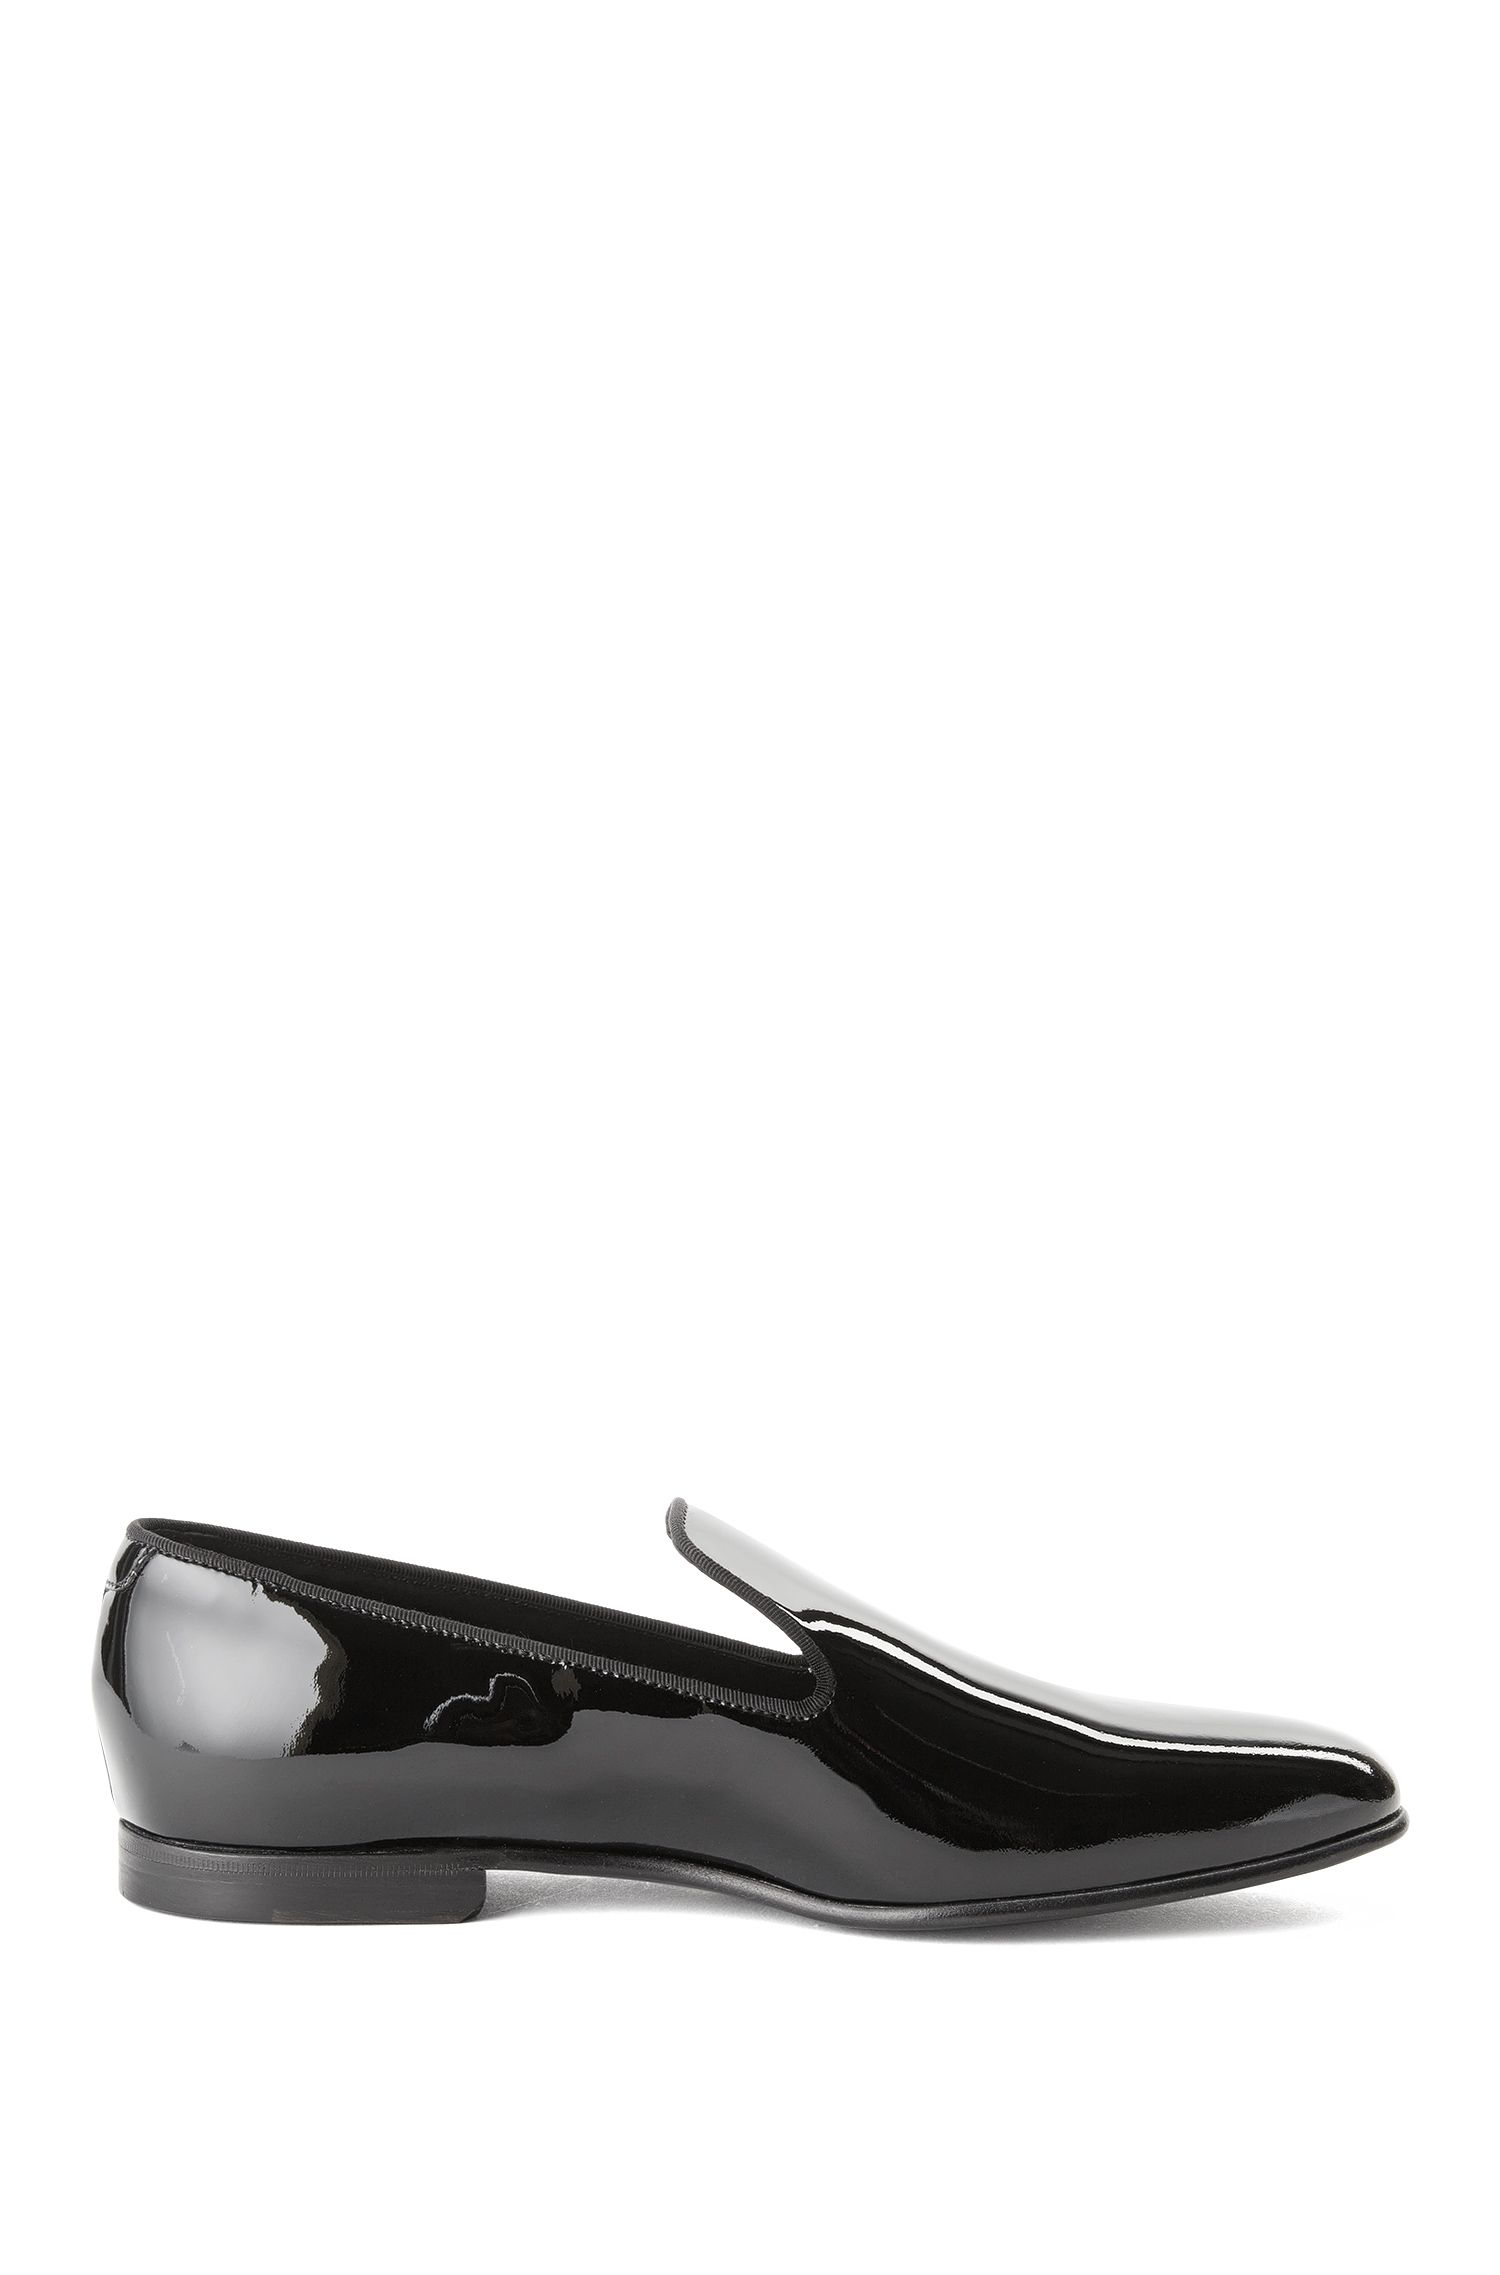 'Loafer-P' | Italian Calfskin Patent Loafers